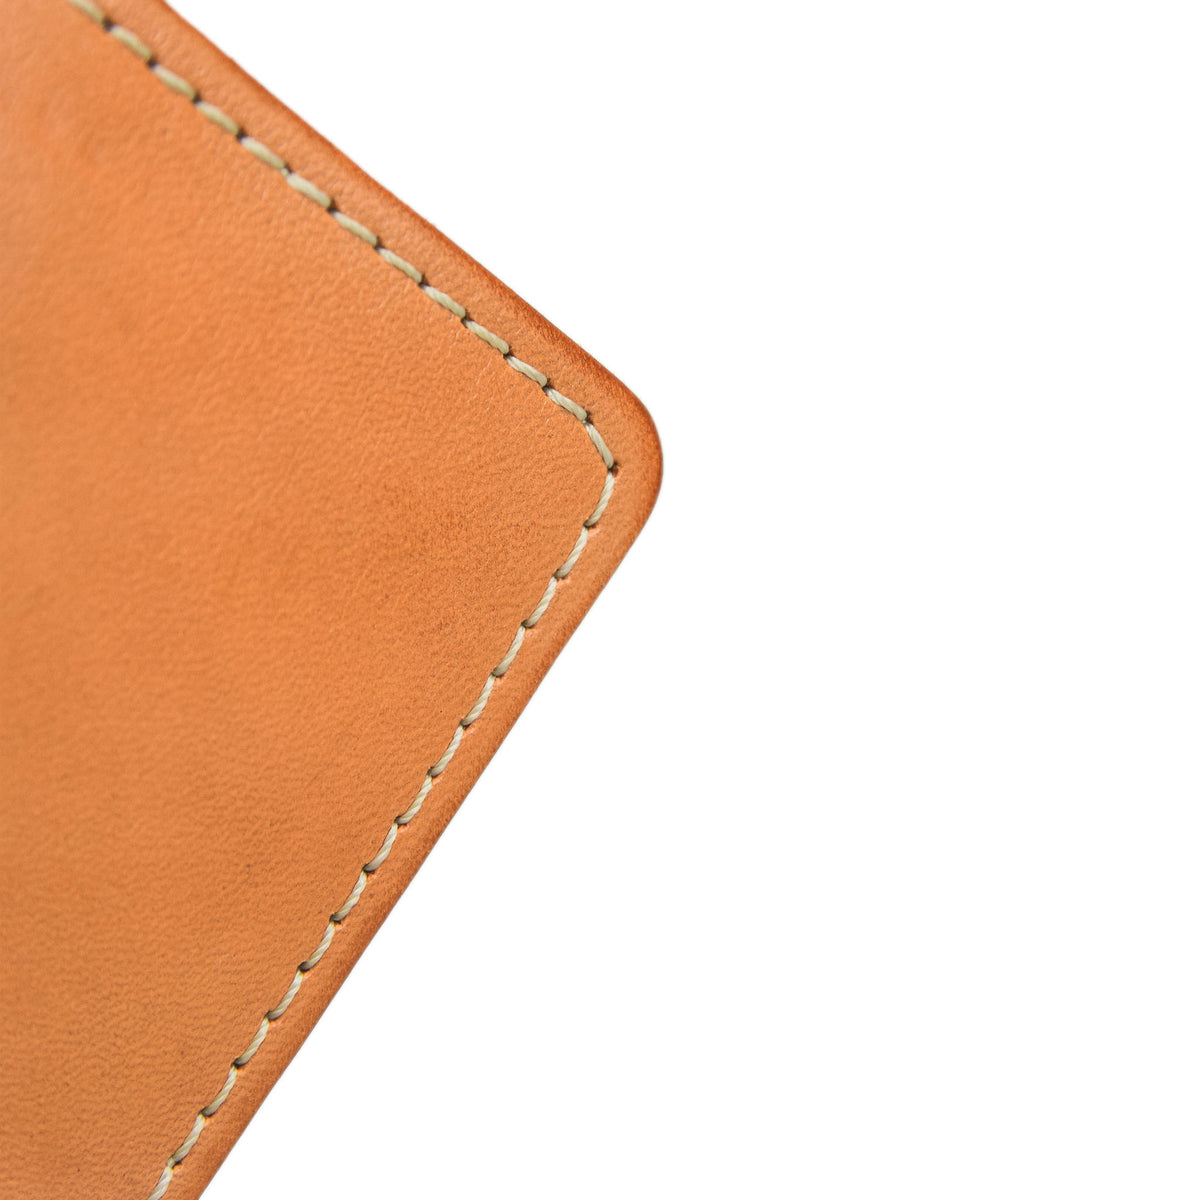 Red Wing Veg Tan Leather Classic Bifold Wallet Made in USA stitching